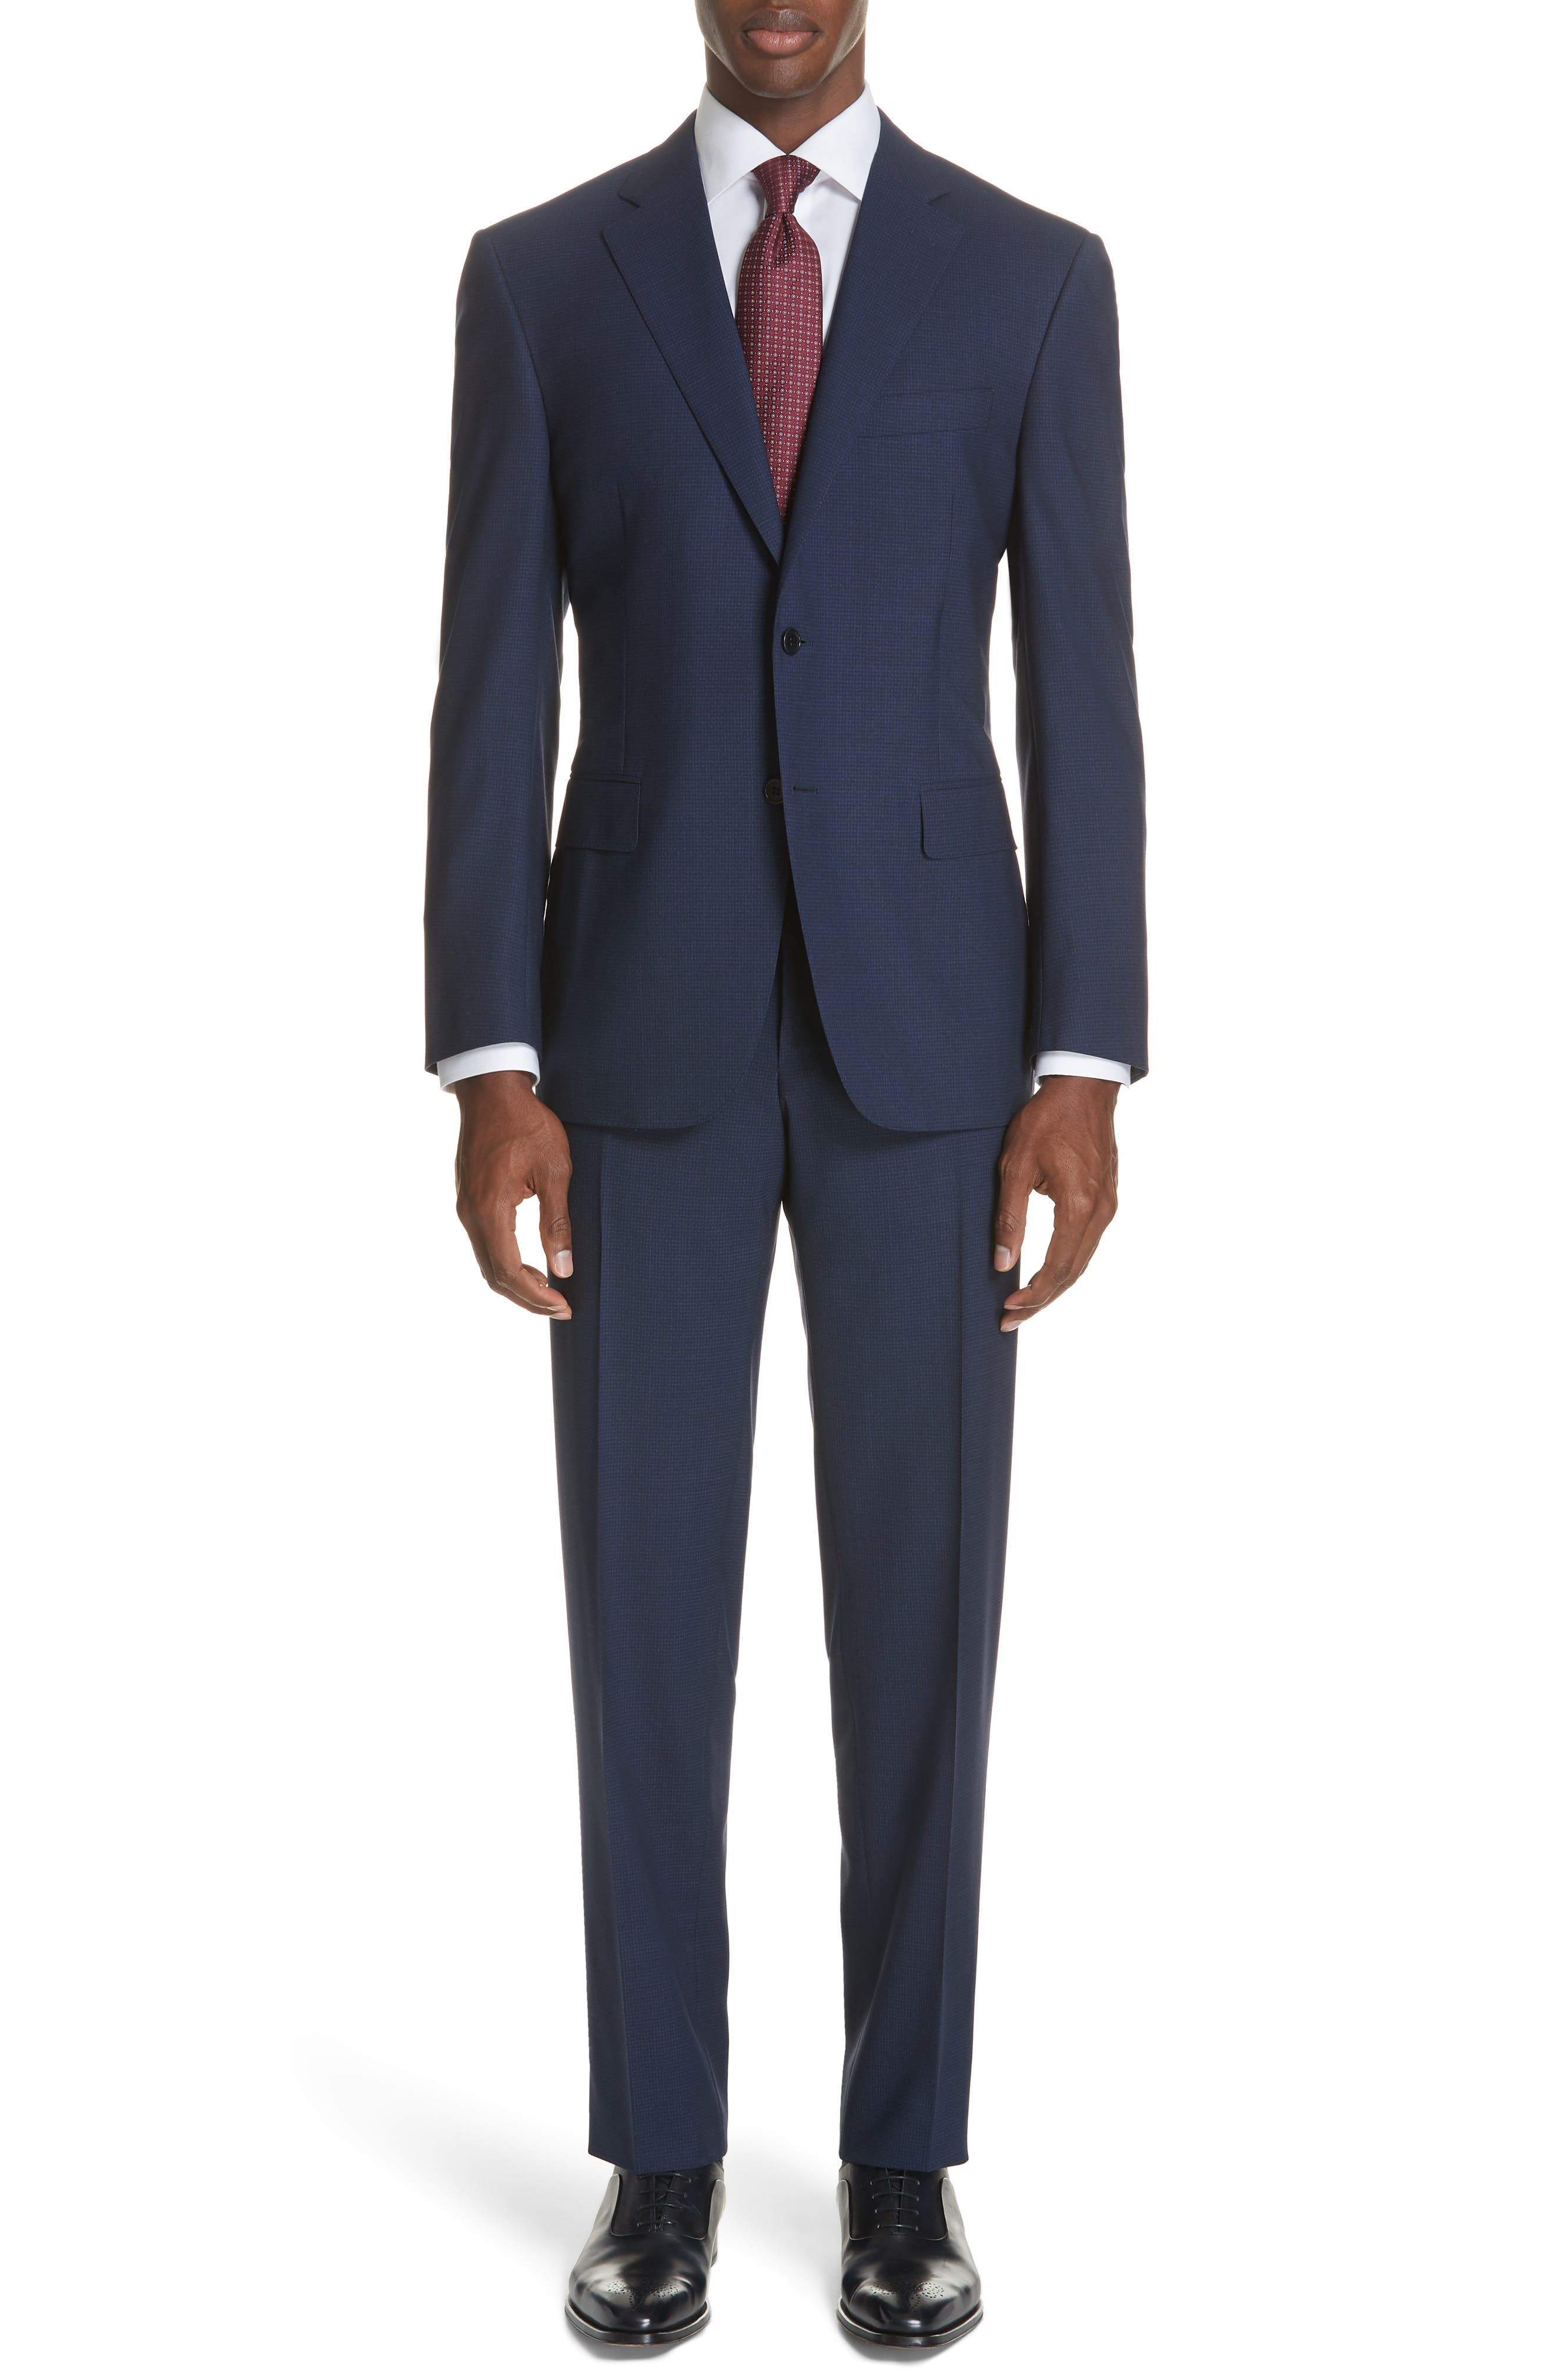 CANALI,                             Classic Fit Check Wool Suit,                             Main thumbnail 1, color,                             400